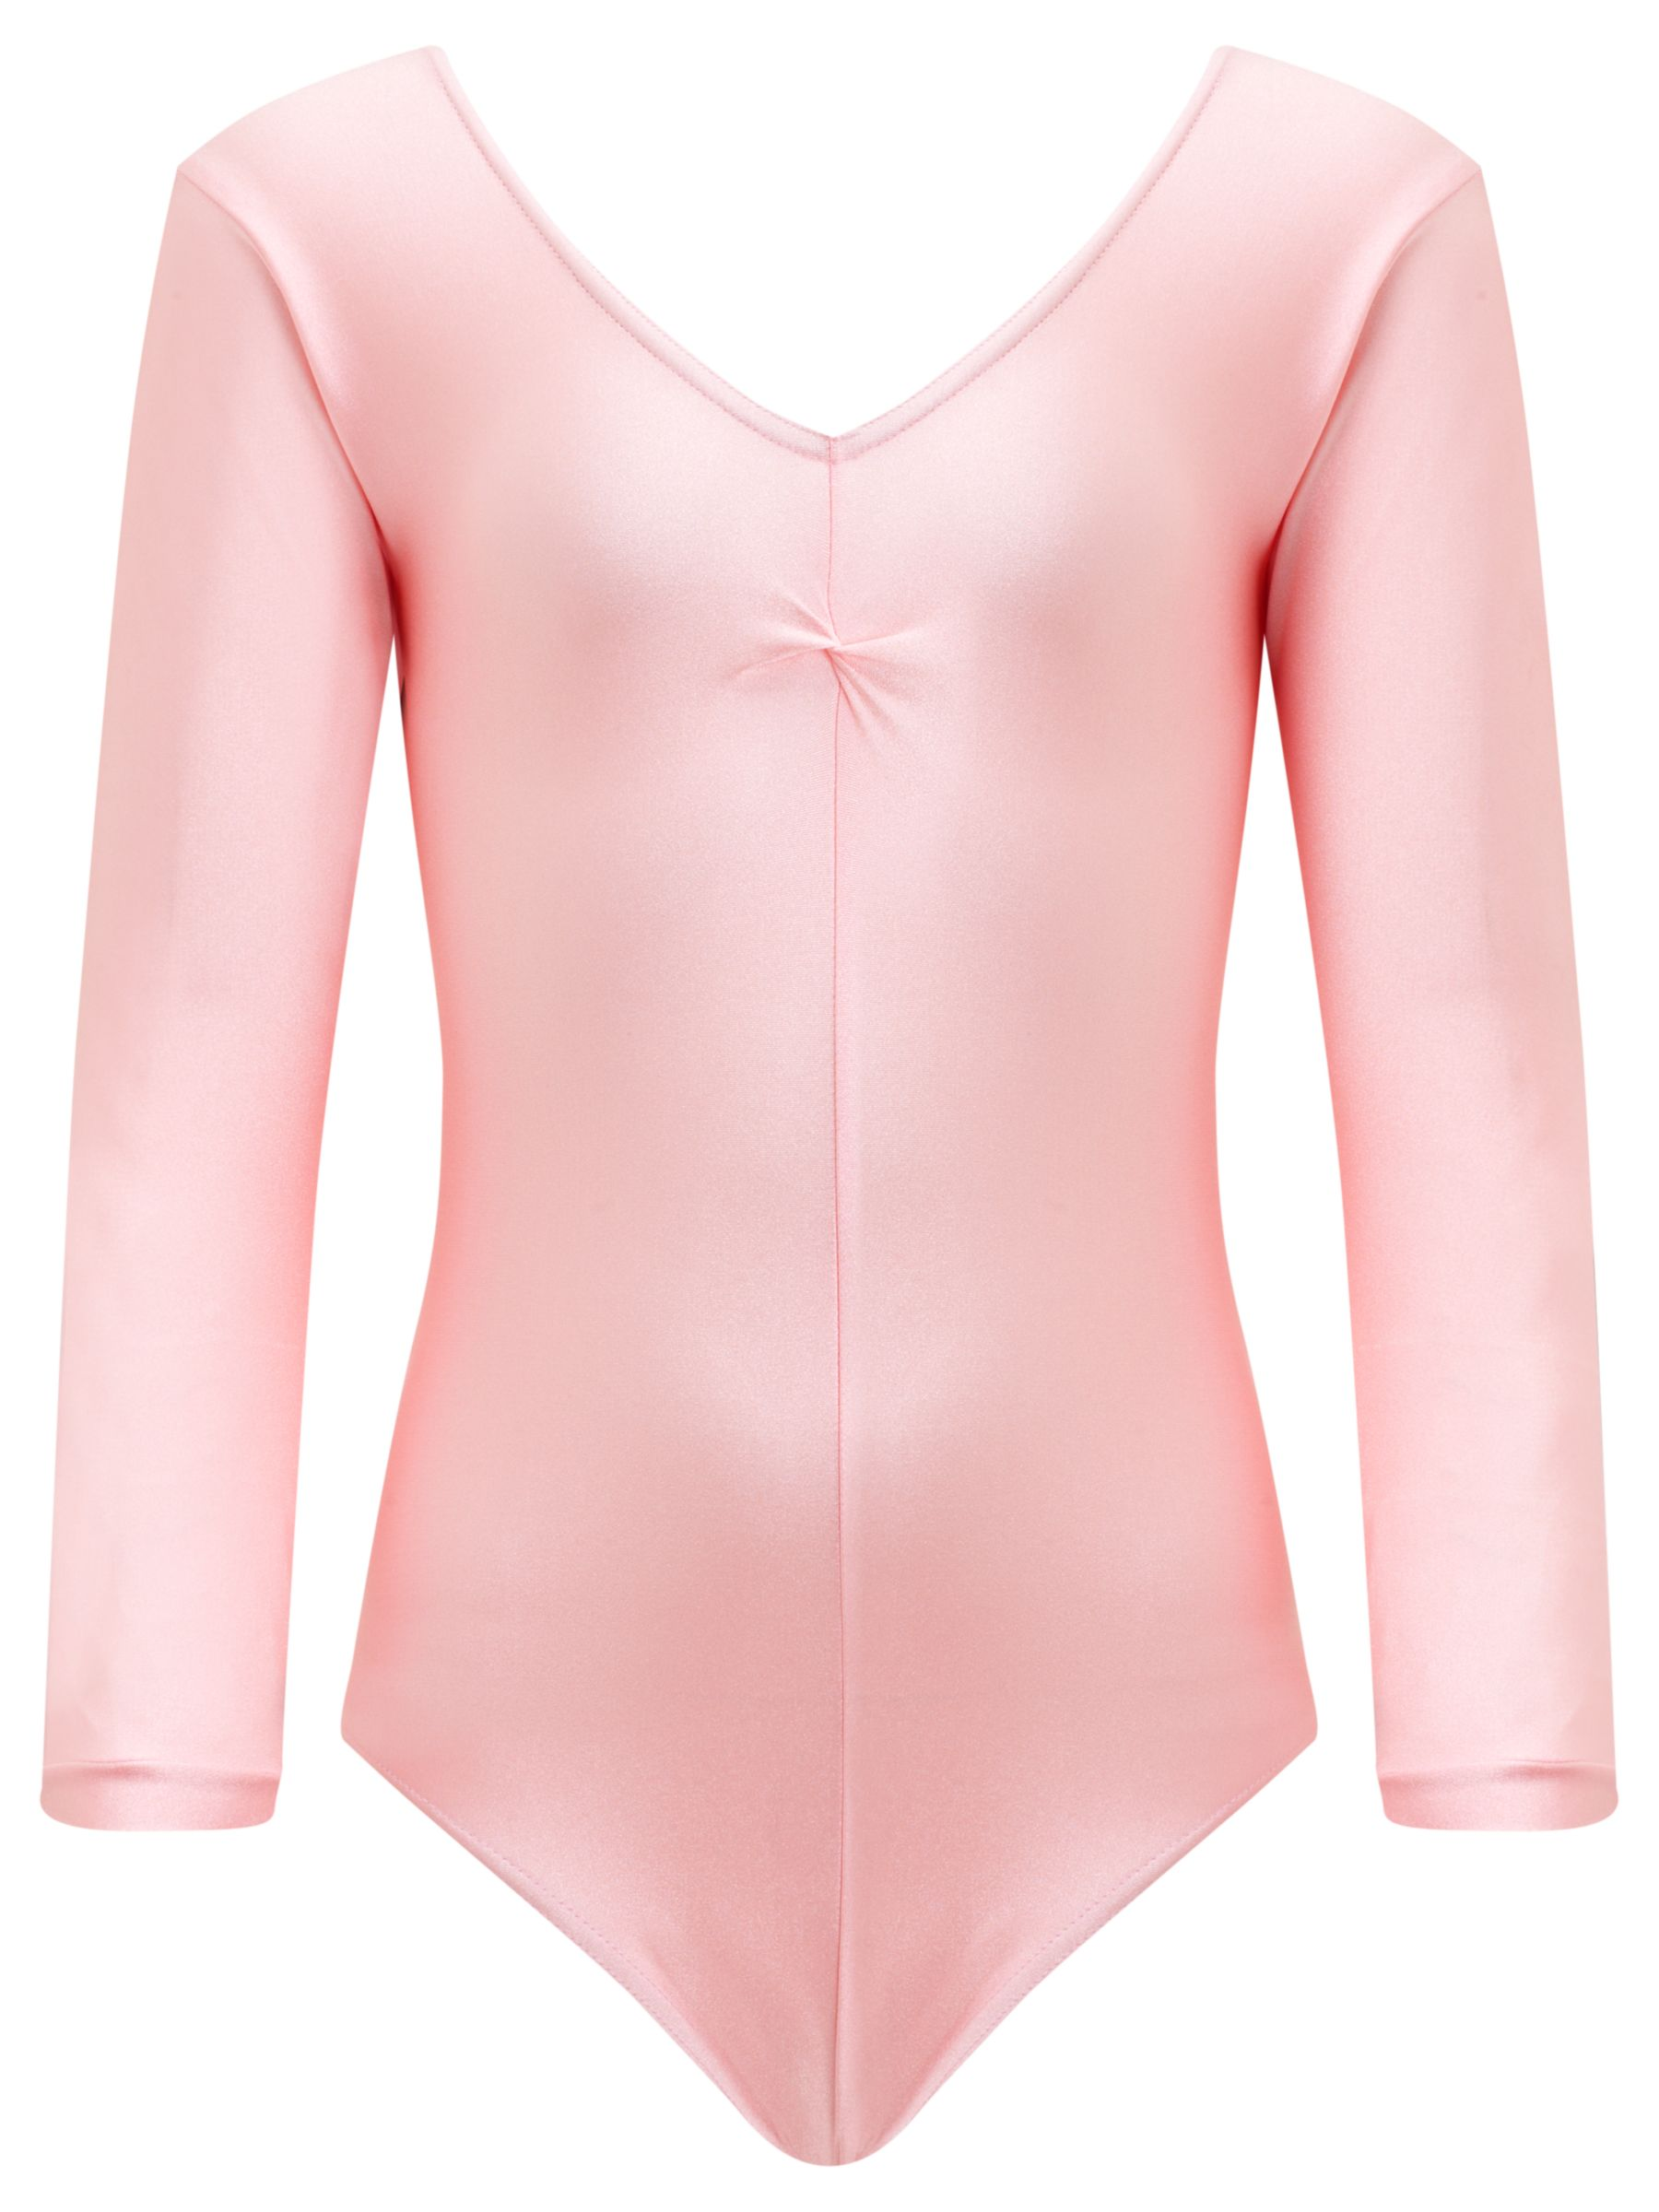 Tappers and Pointers Tappers and Pointers Long Sleeve Ruched Leotard